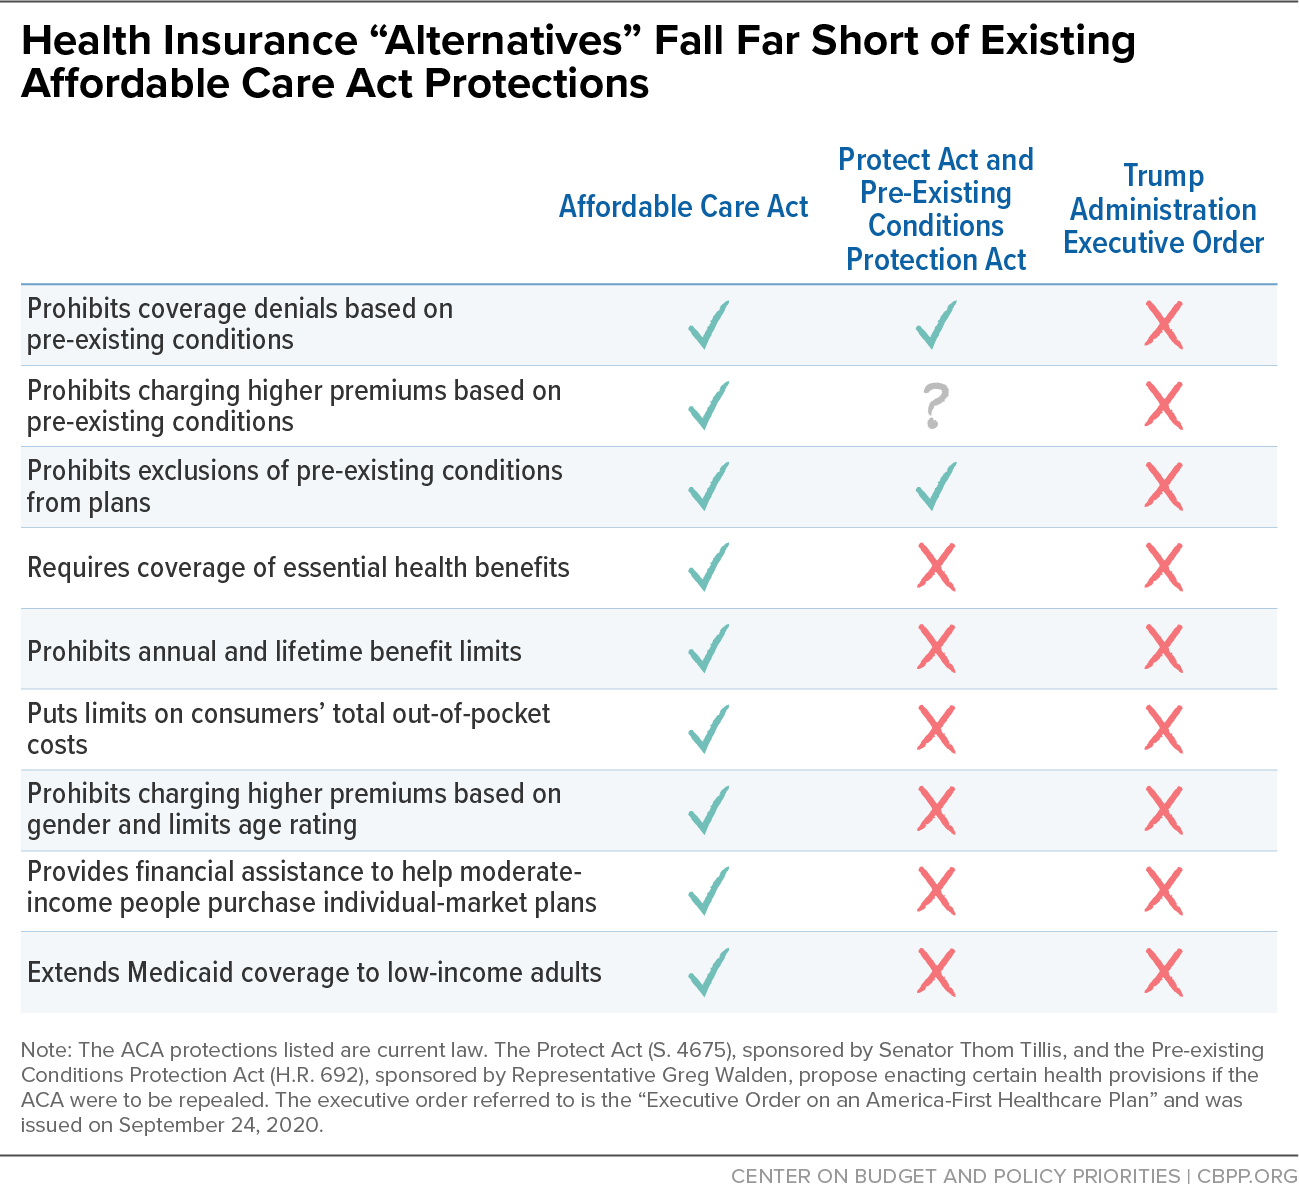 "Health Insurance ""Alternatives"" Fall Far Short of Existing Affordable Care Act Protections"